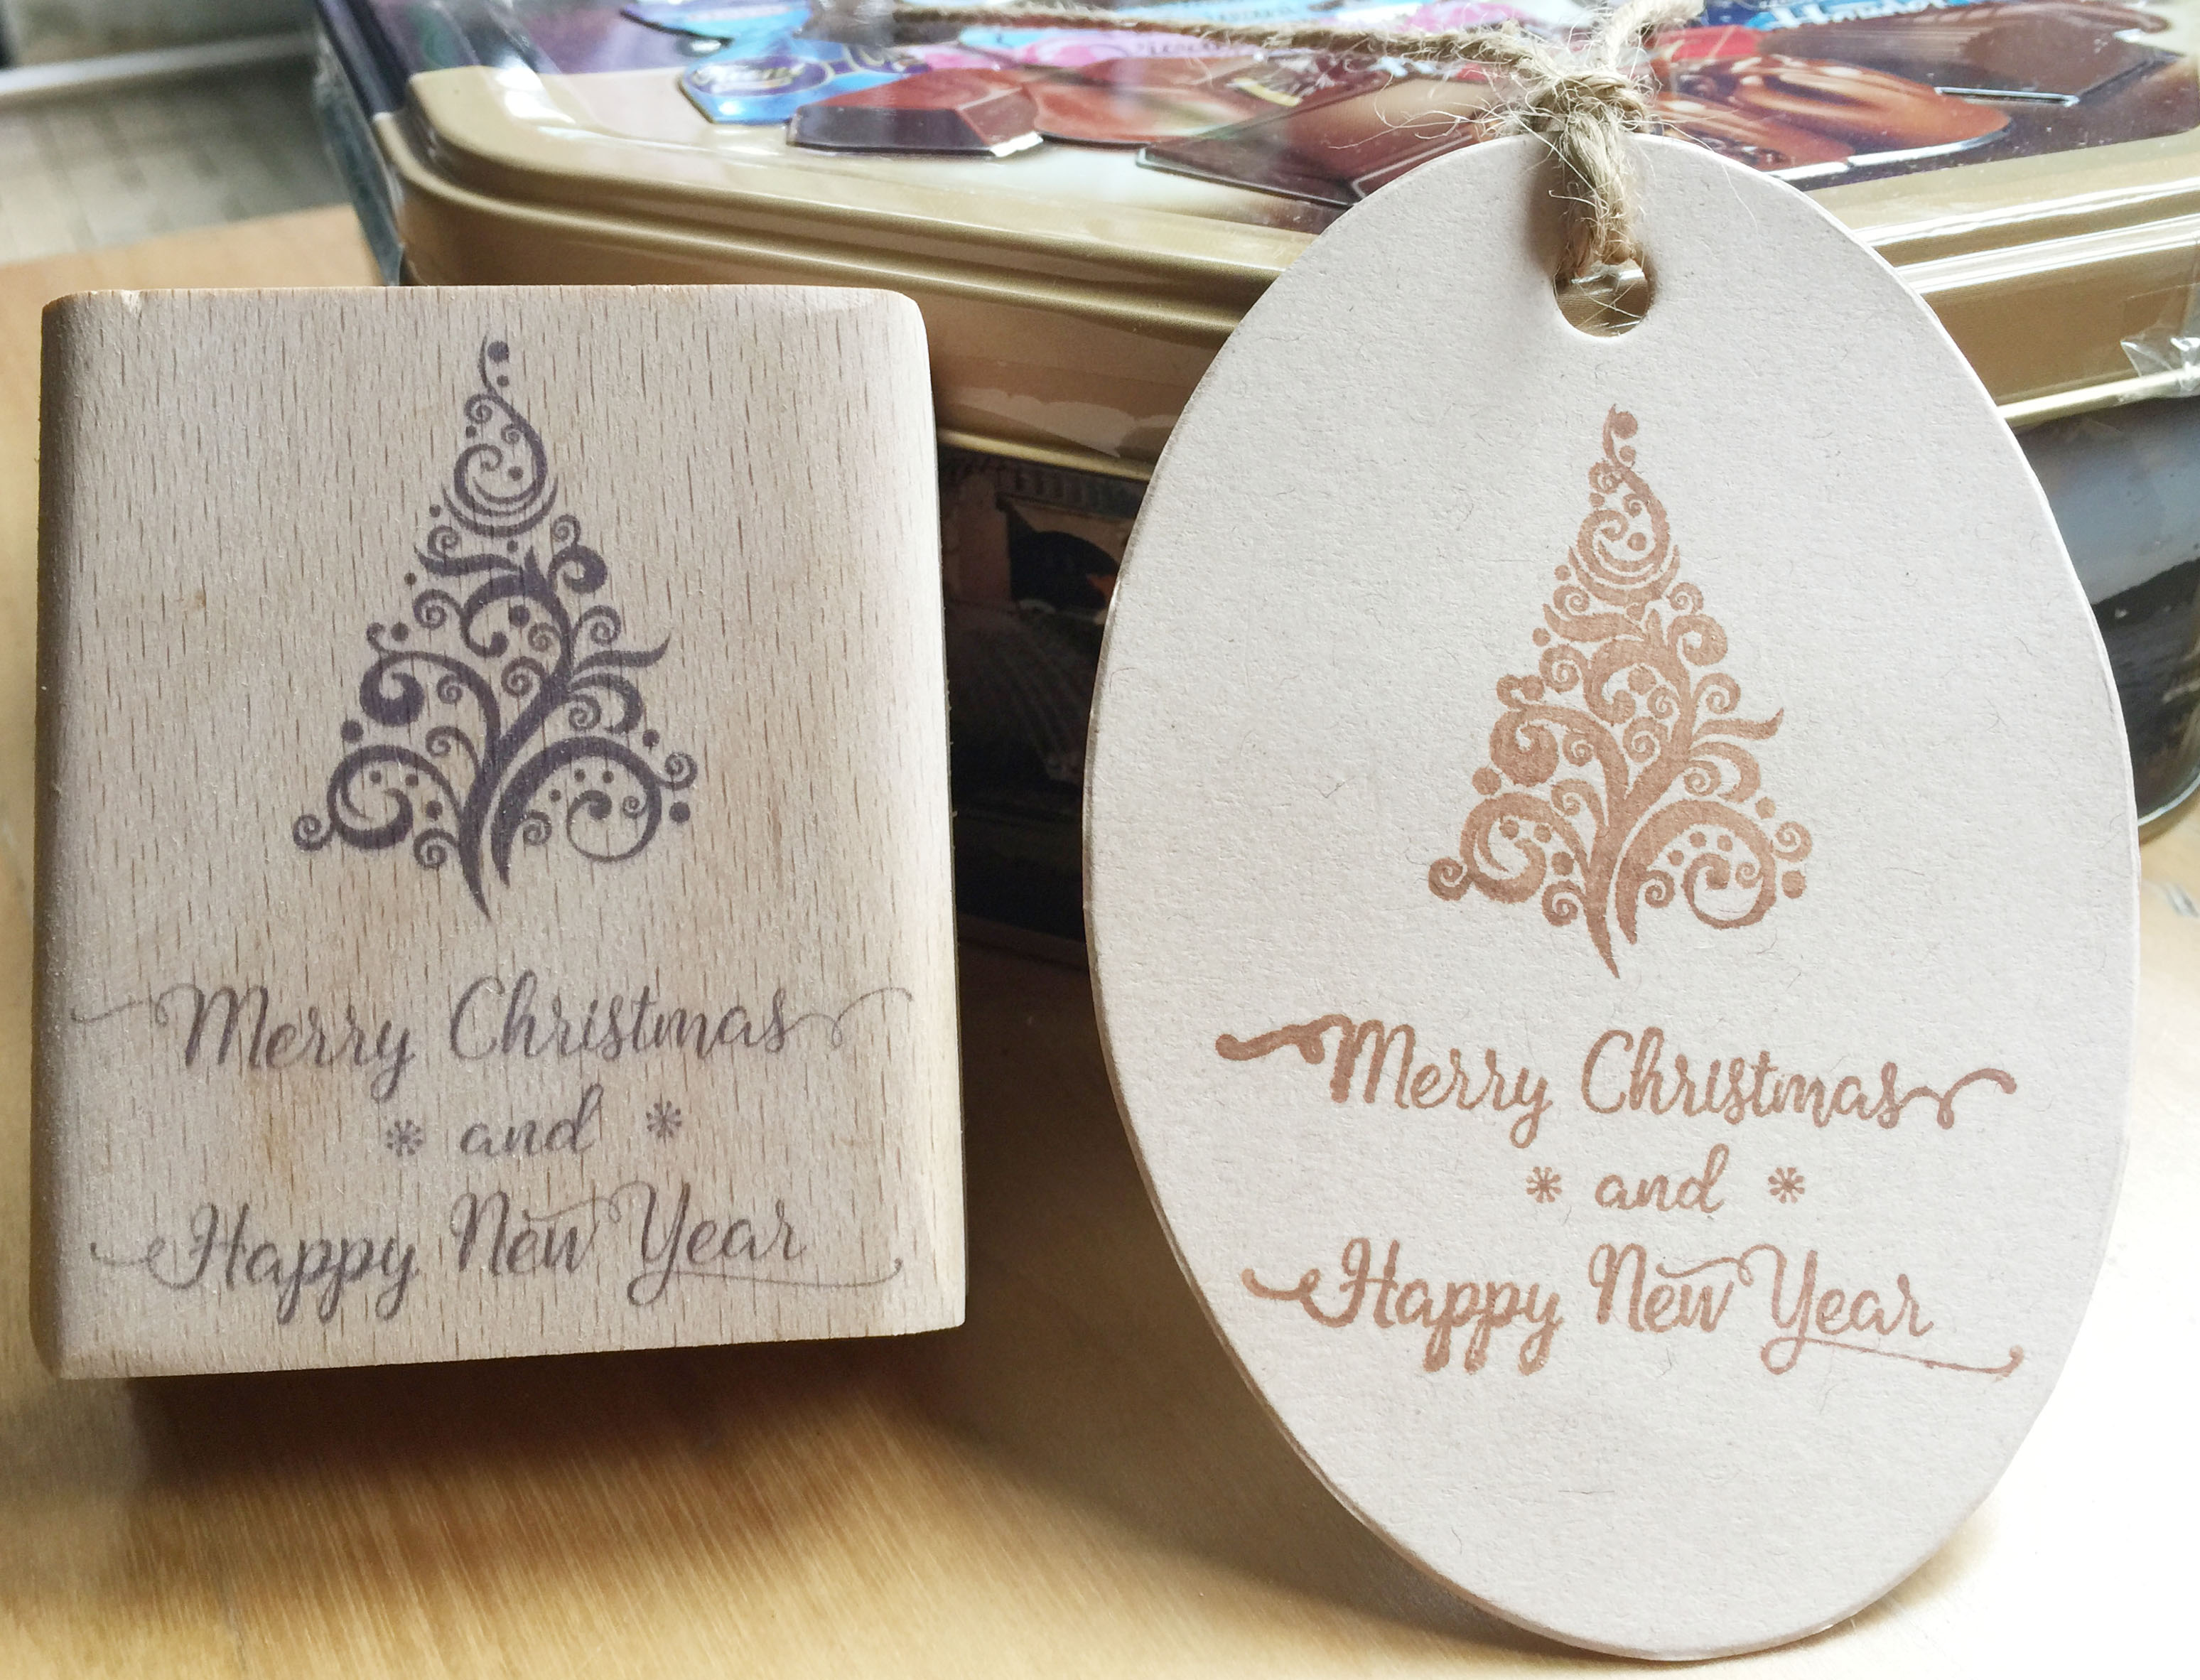 handmade merry christmas happy new year 7*6cm wooden rubber stamps for scrapbooking carimbo timbri christmas stamps te0192 garner 2005 international year of physics einstein 5 new stamps 0405